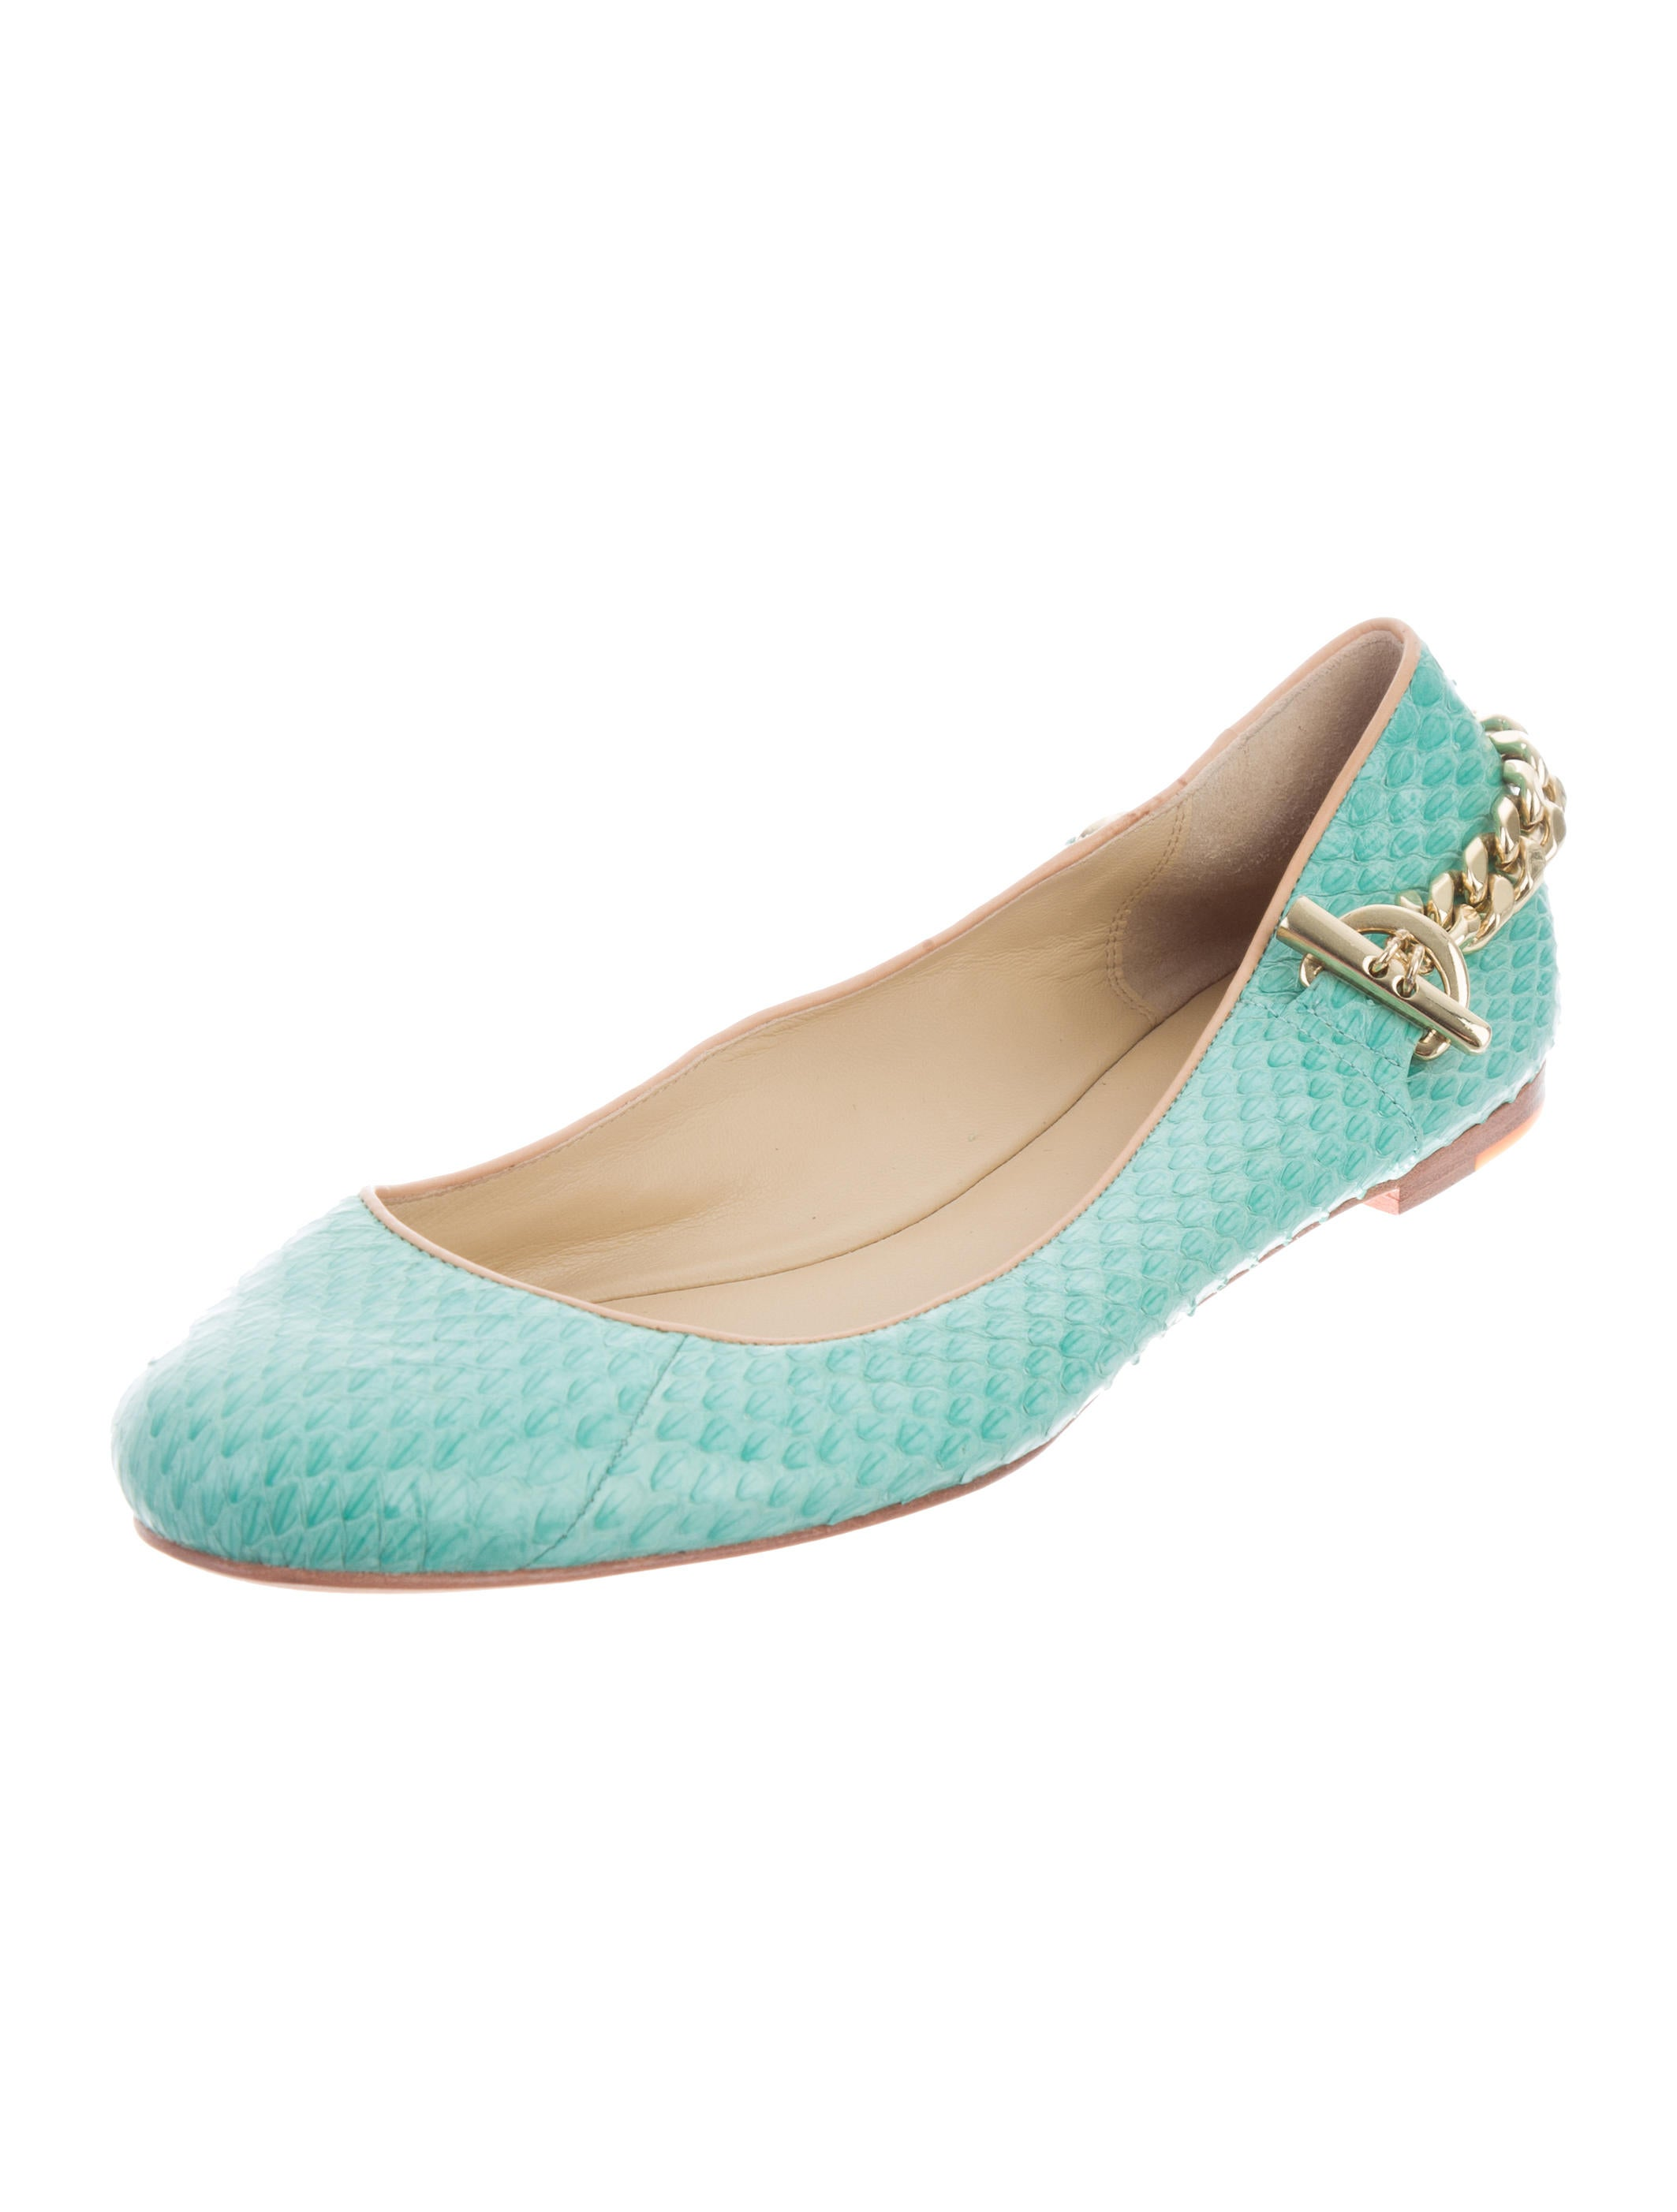 Rachel Zoe Chain-Link Snakeskin Flats sale cheapest price 100% original online free shipping with credit card outlet best store to get C5m4Jslj